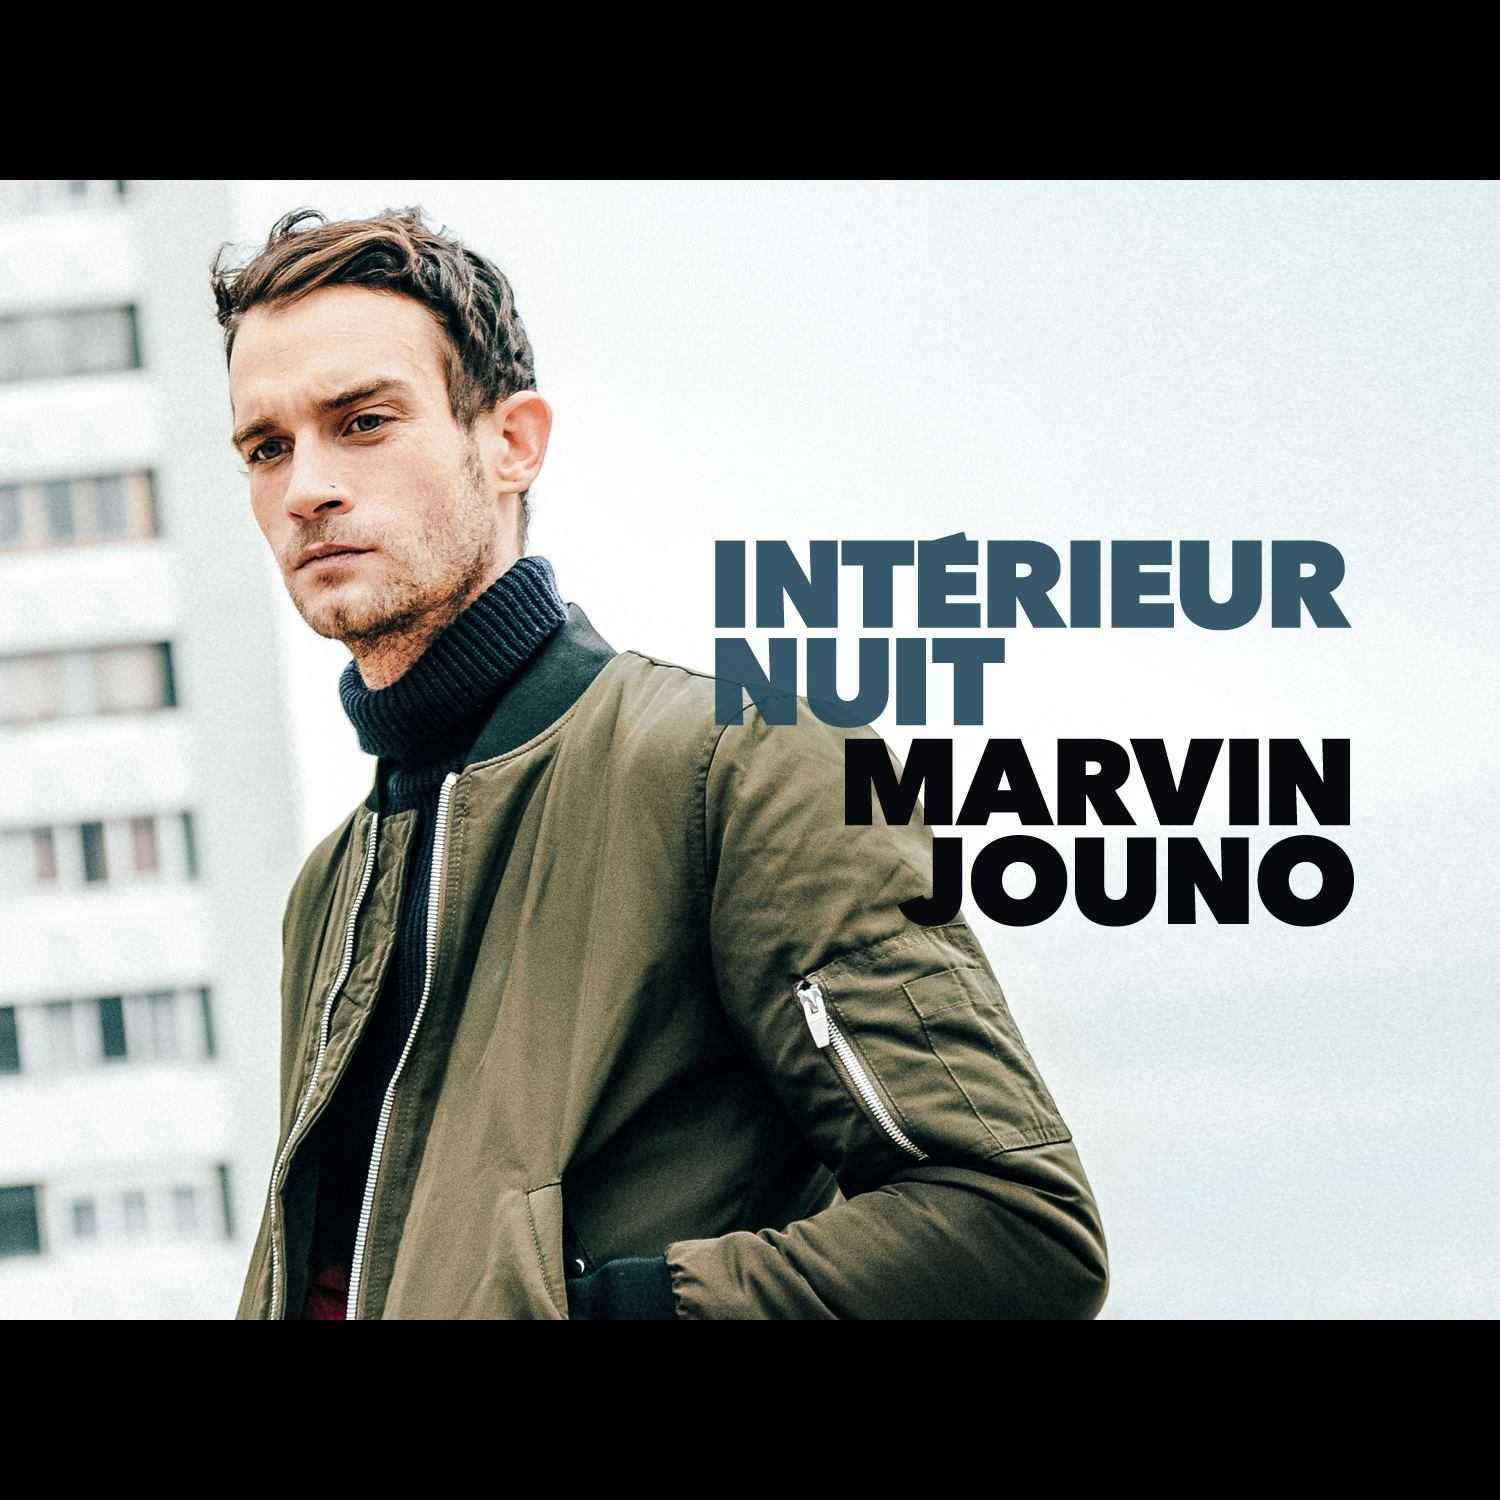 Couverture album Intérieur Nuit de Marvin Jouno Un Plan Simple Sony Music photo Elise Toïdé